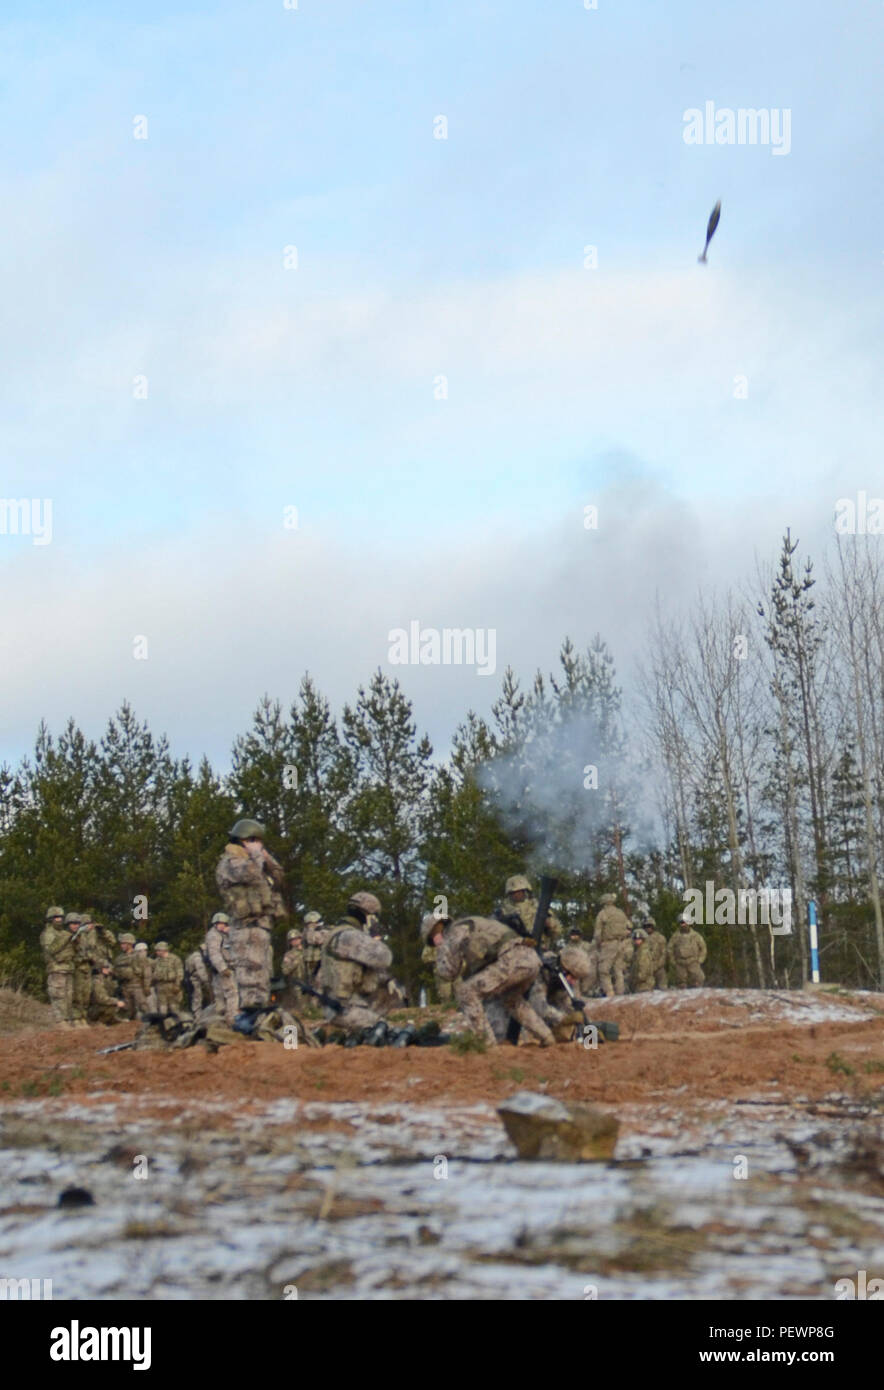 An 81 mm mortar round can be seen in midair as Soldiers of 3rd Squadron, 2nd Cavalry Regiment, stationed out of Vilseck, Germany, shoot it out of an M252 Mortar System during a joint training exercise in Adazi Training Area in Latvia, Feb. 4, 2016. (Photo by U.S. Army Staff Sgt. Steven M. Colvin/Released) - Stock Image